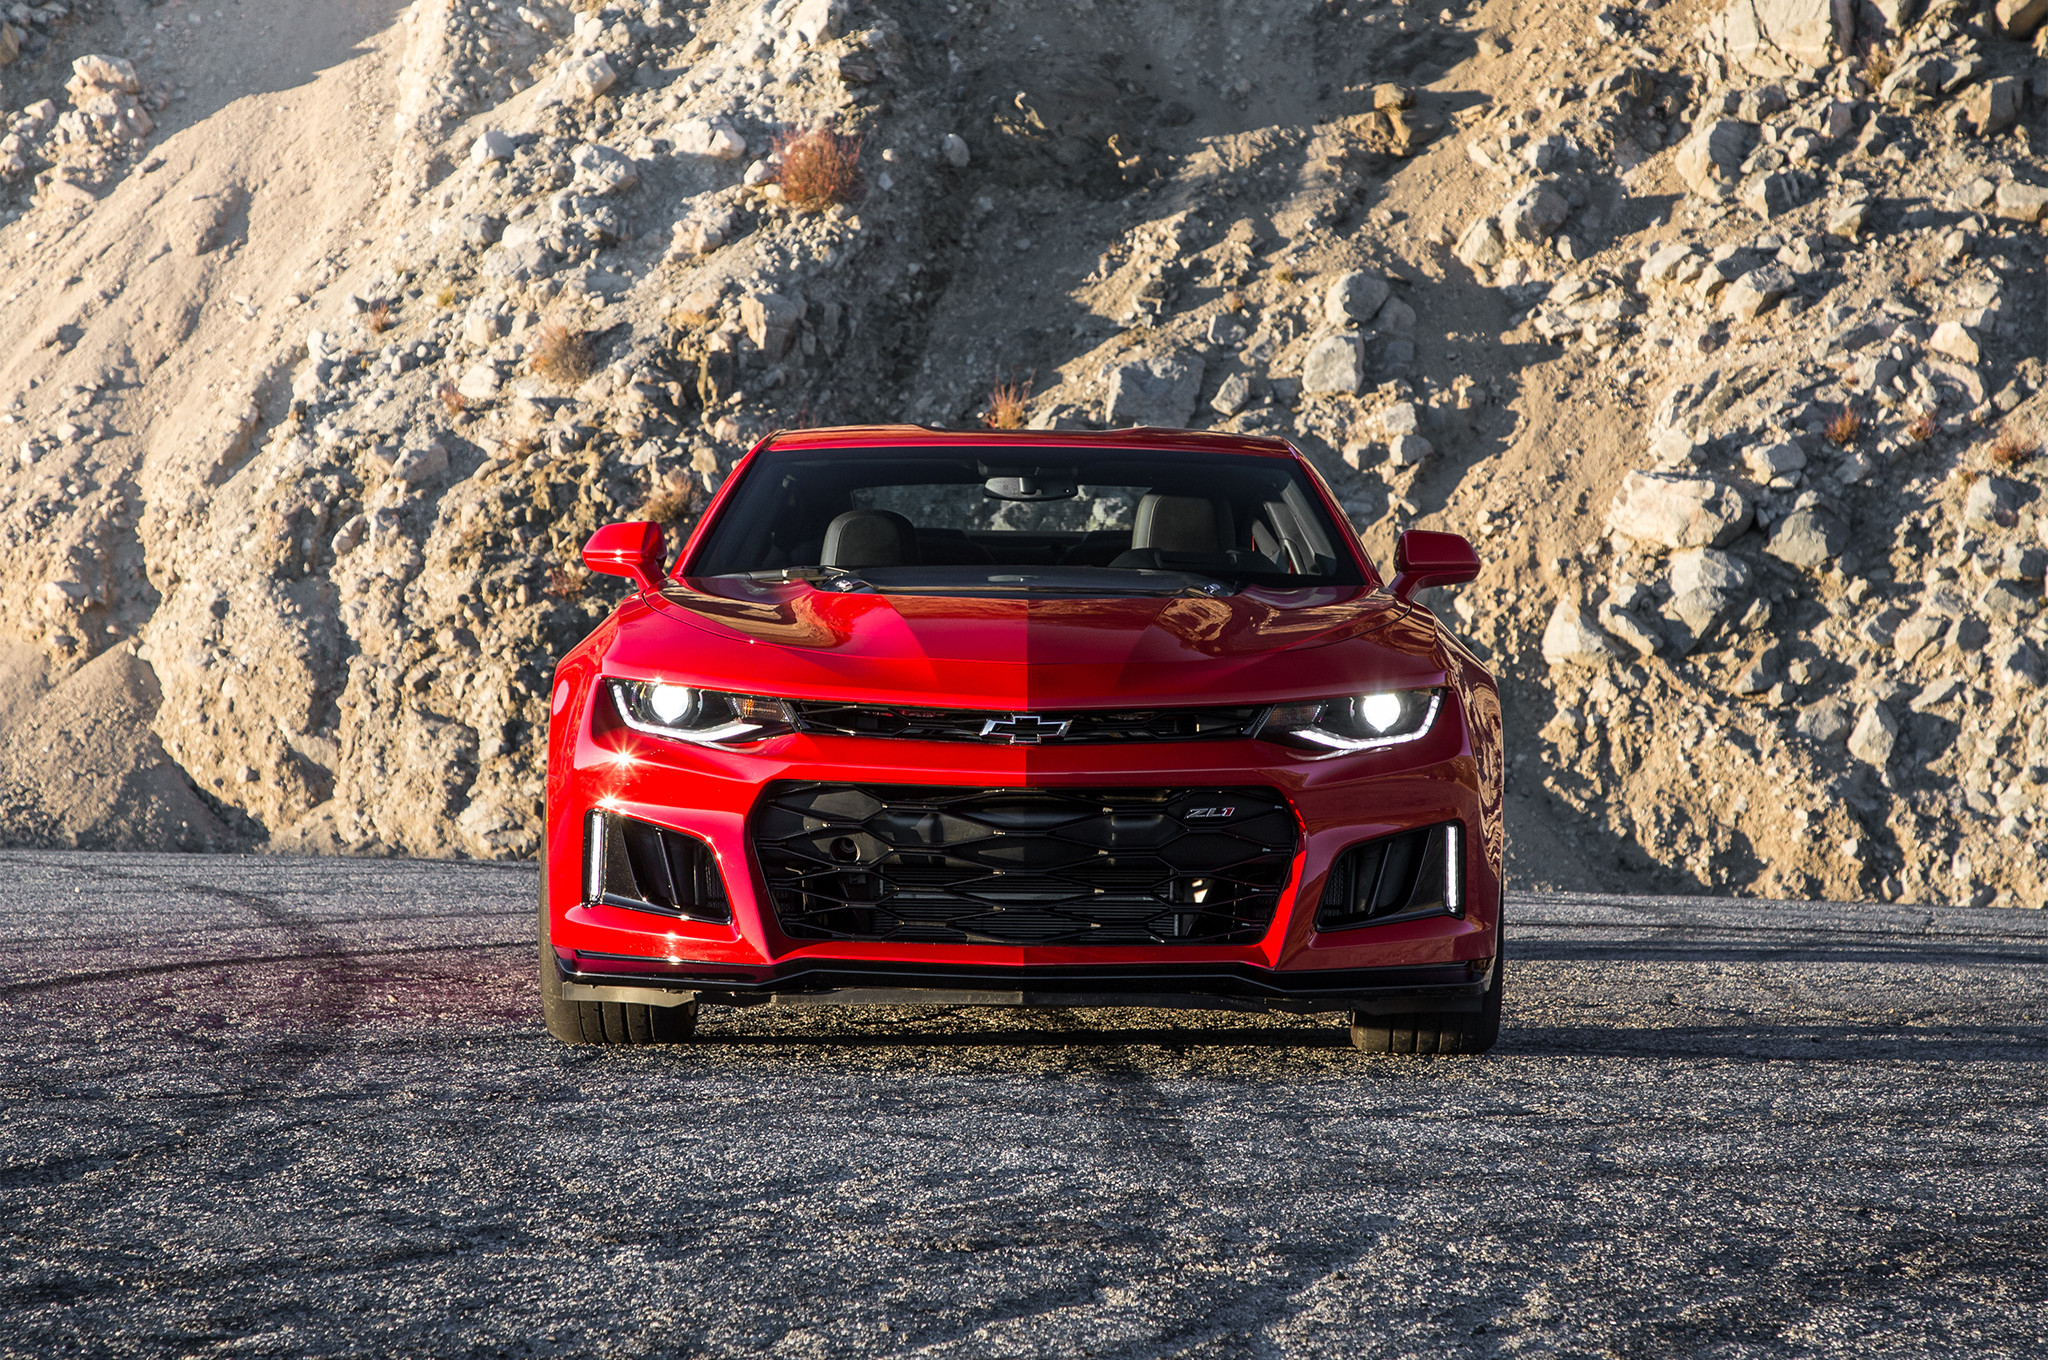 Res: 2048x1360, Chevrolet Camaro ZL1 Wallpapers 7 - 2048 X 1360